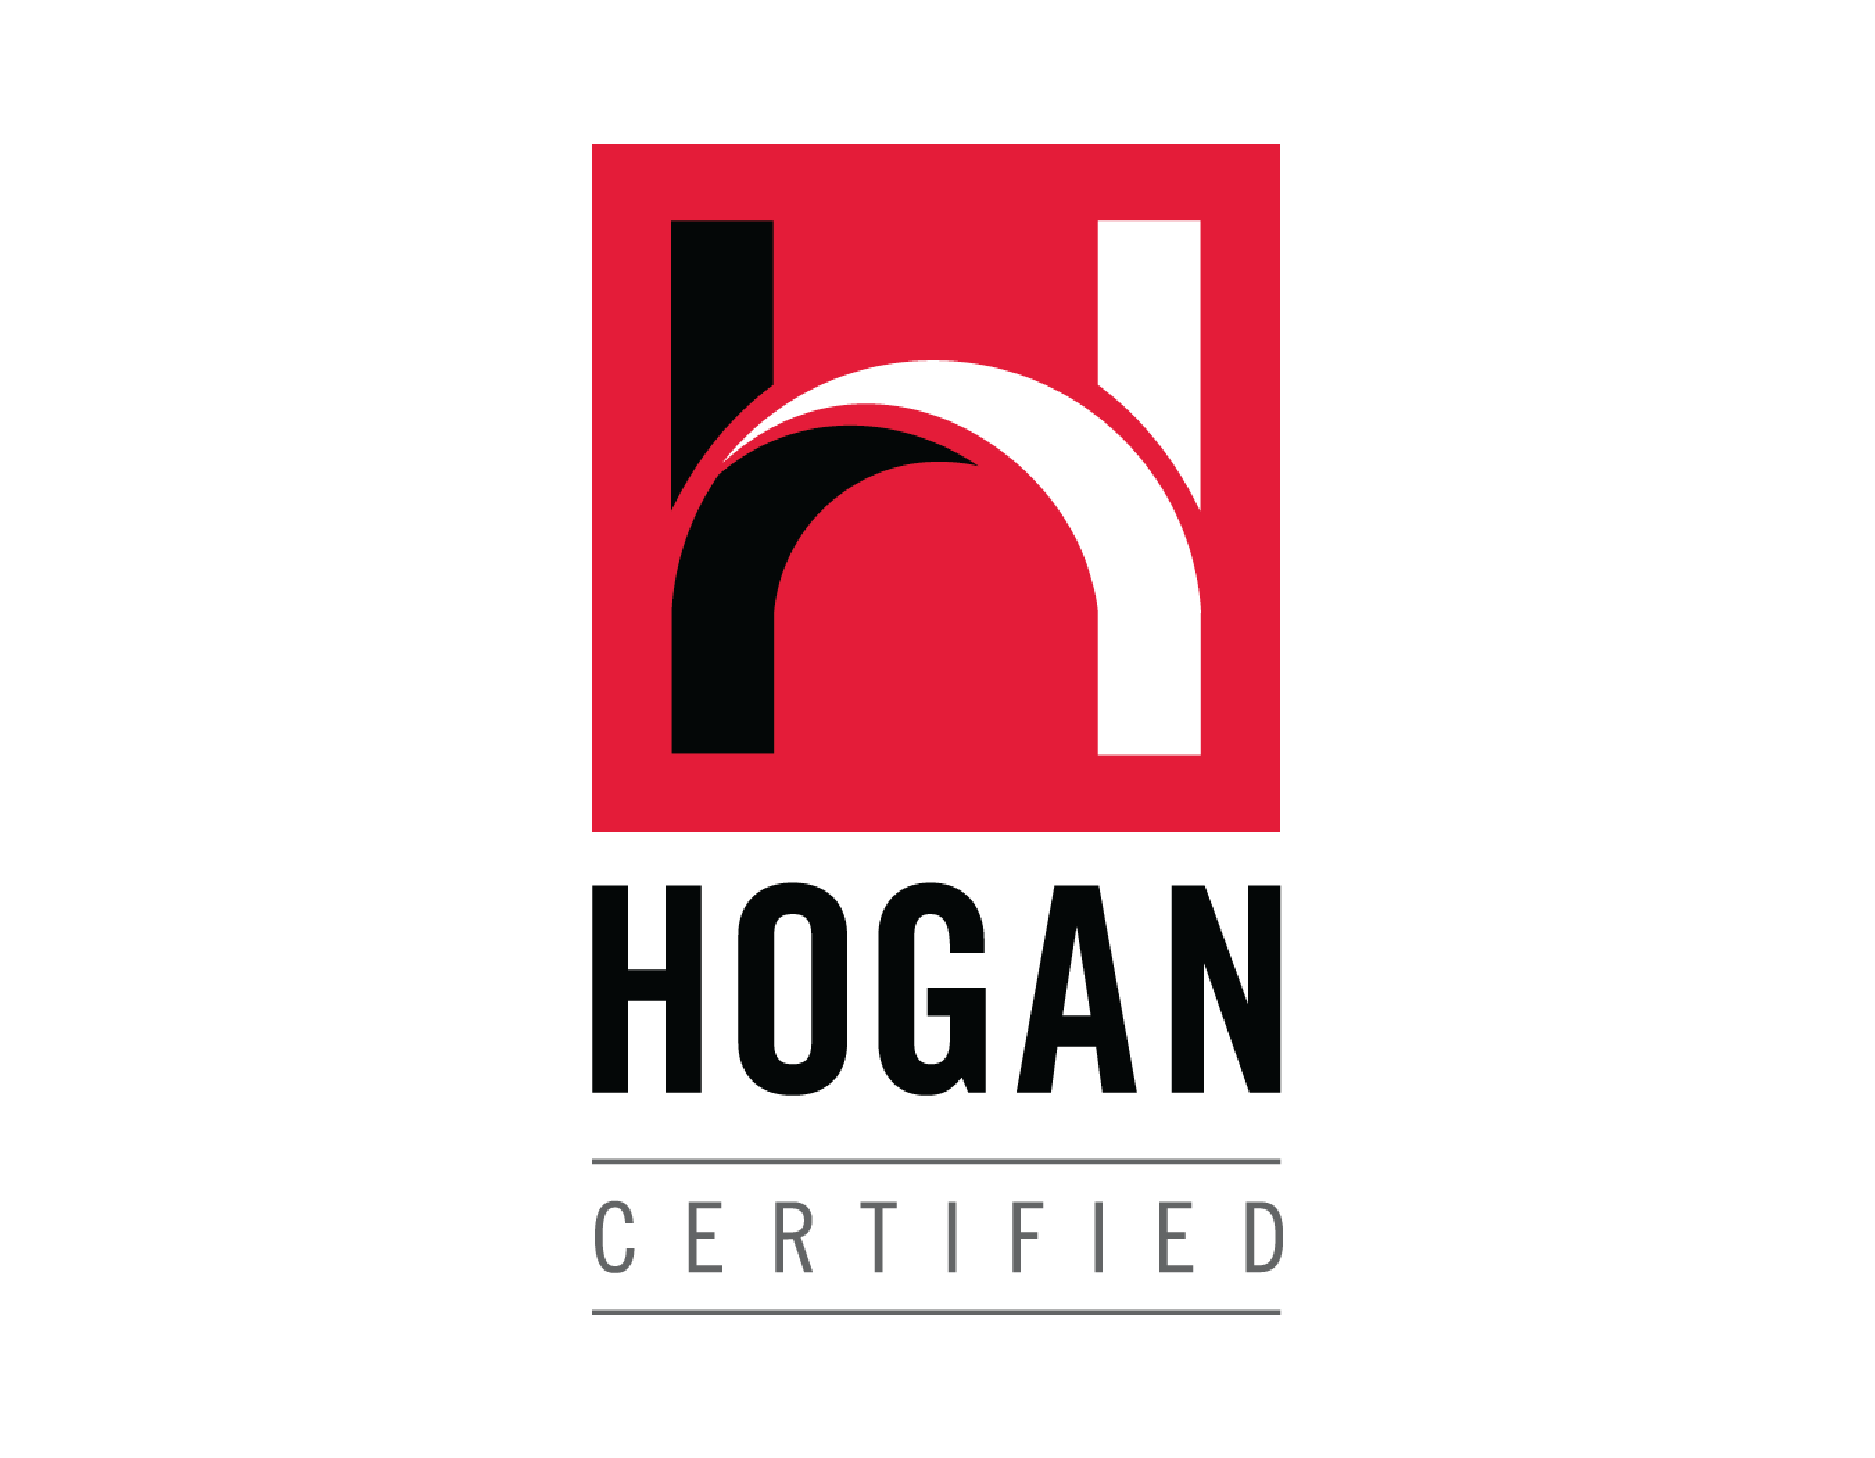 Coaching Credentail Logos 2_Hogan Certified.png